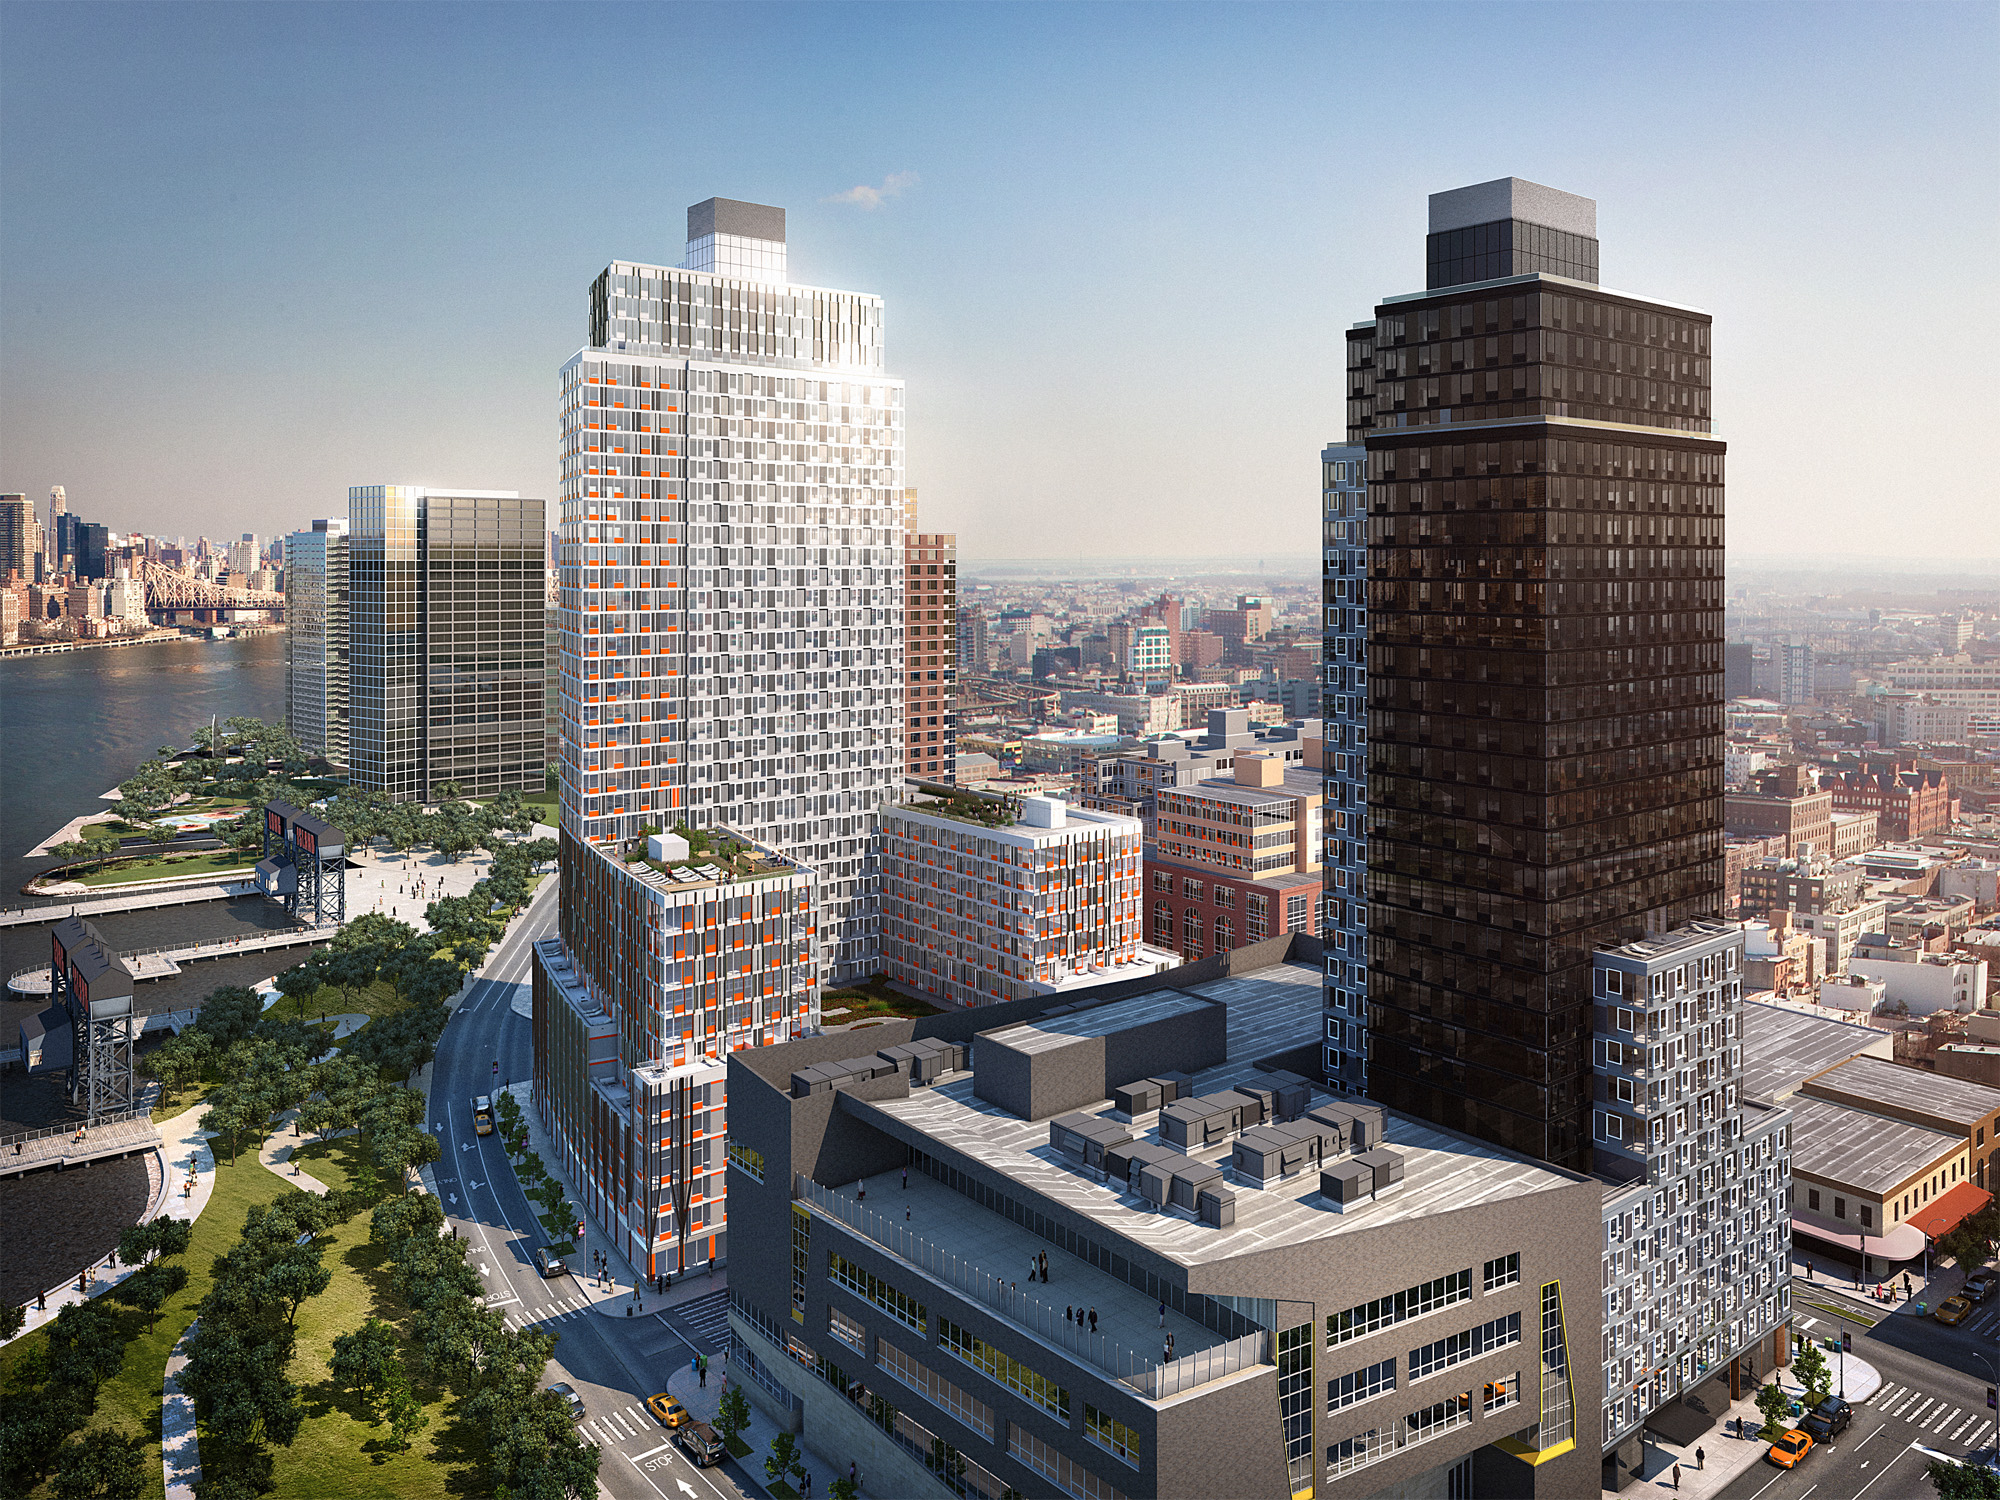 Rendering of Related Companies' residential towers at Hunter's Point South (credit: SHoP Architects)